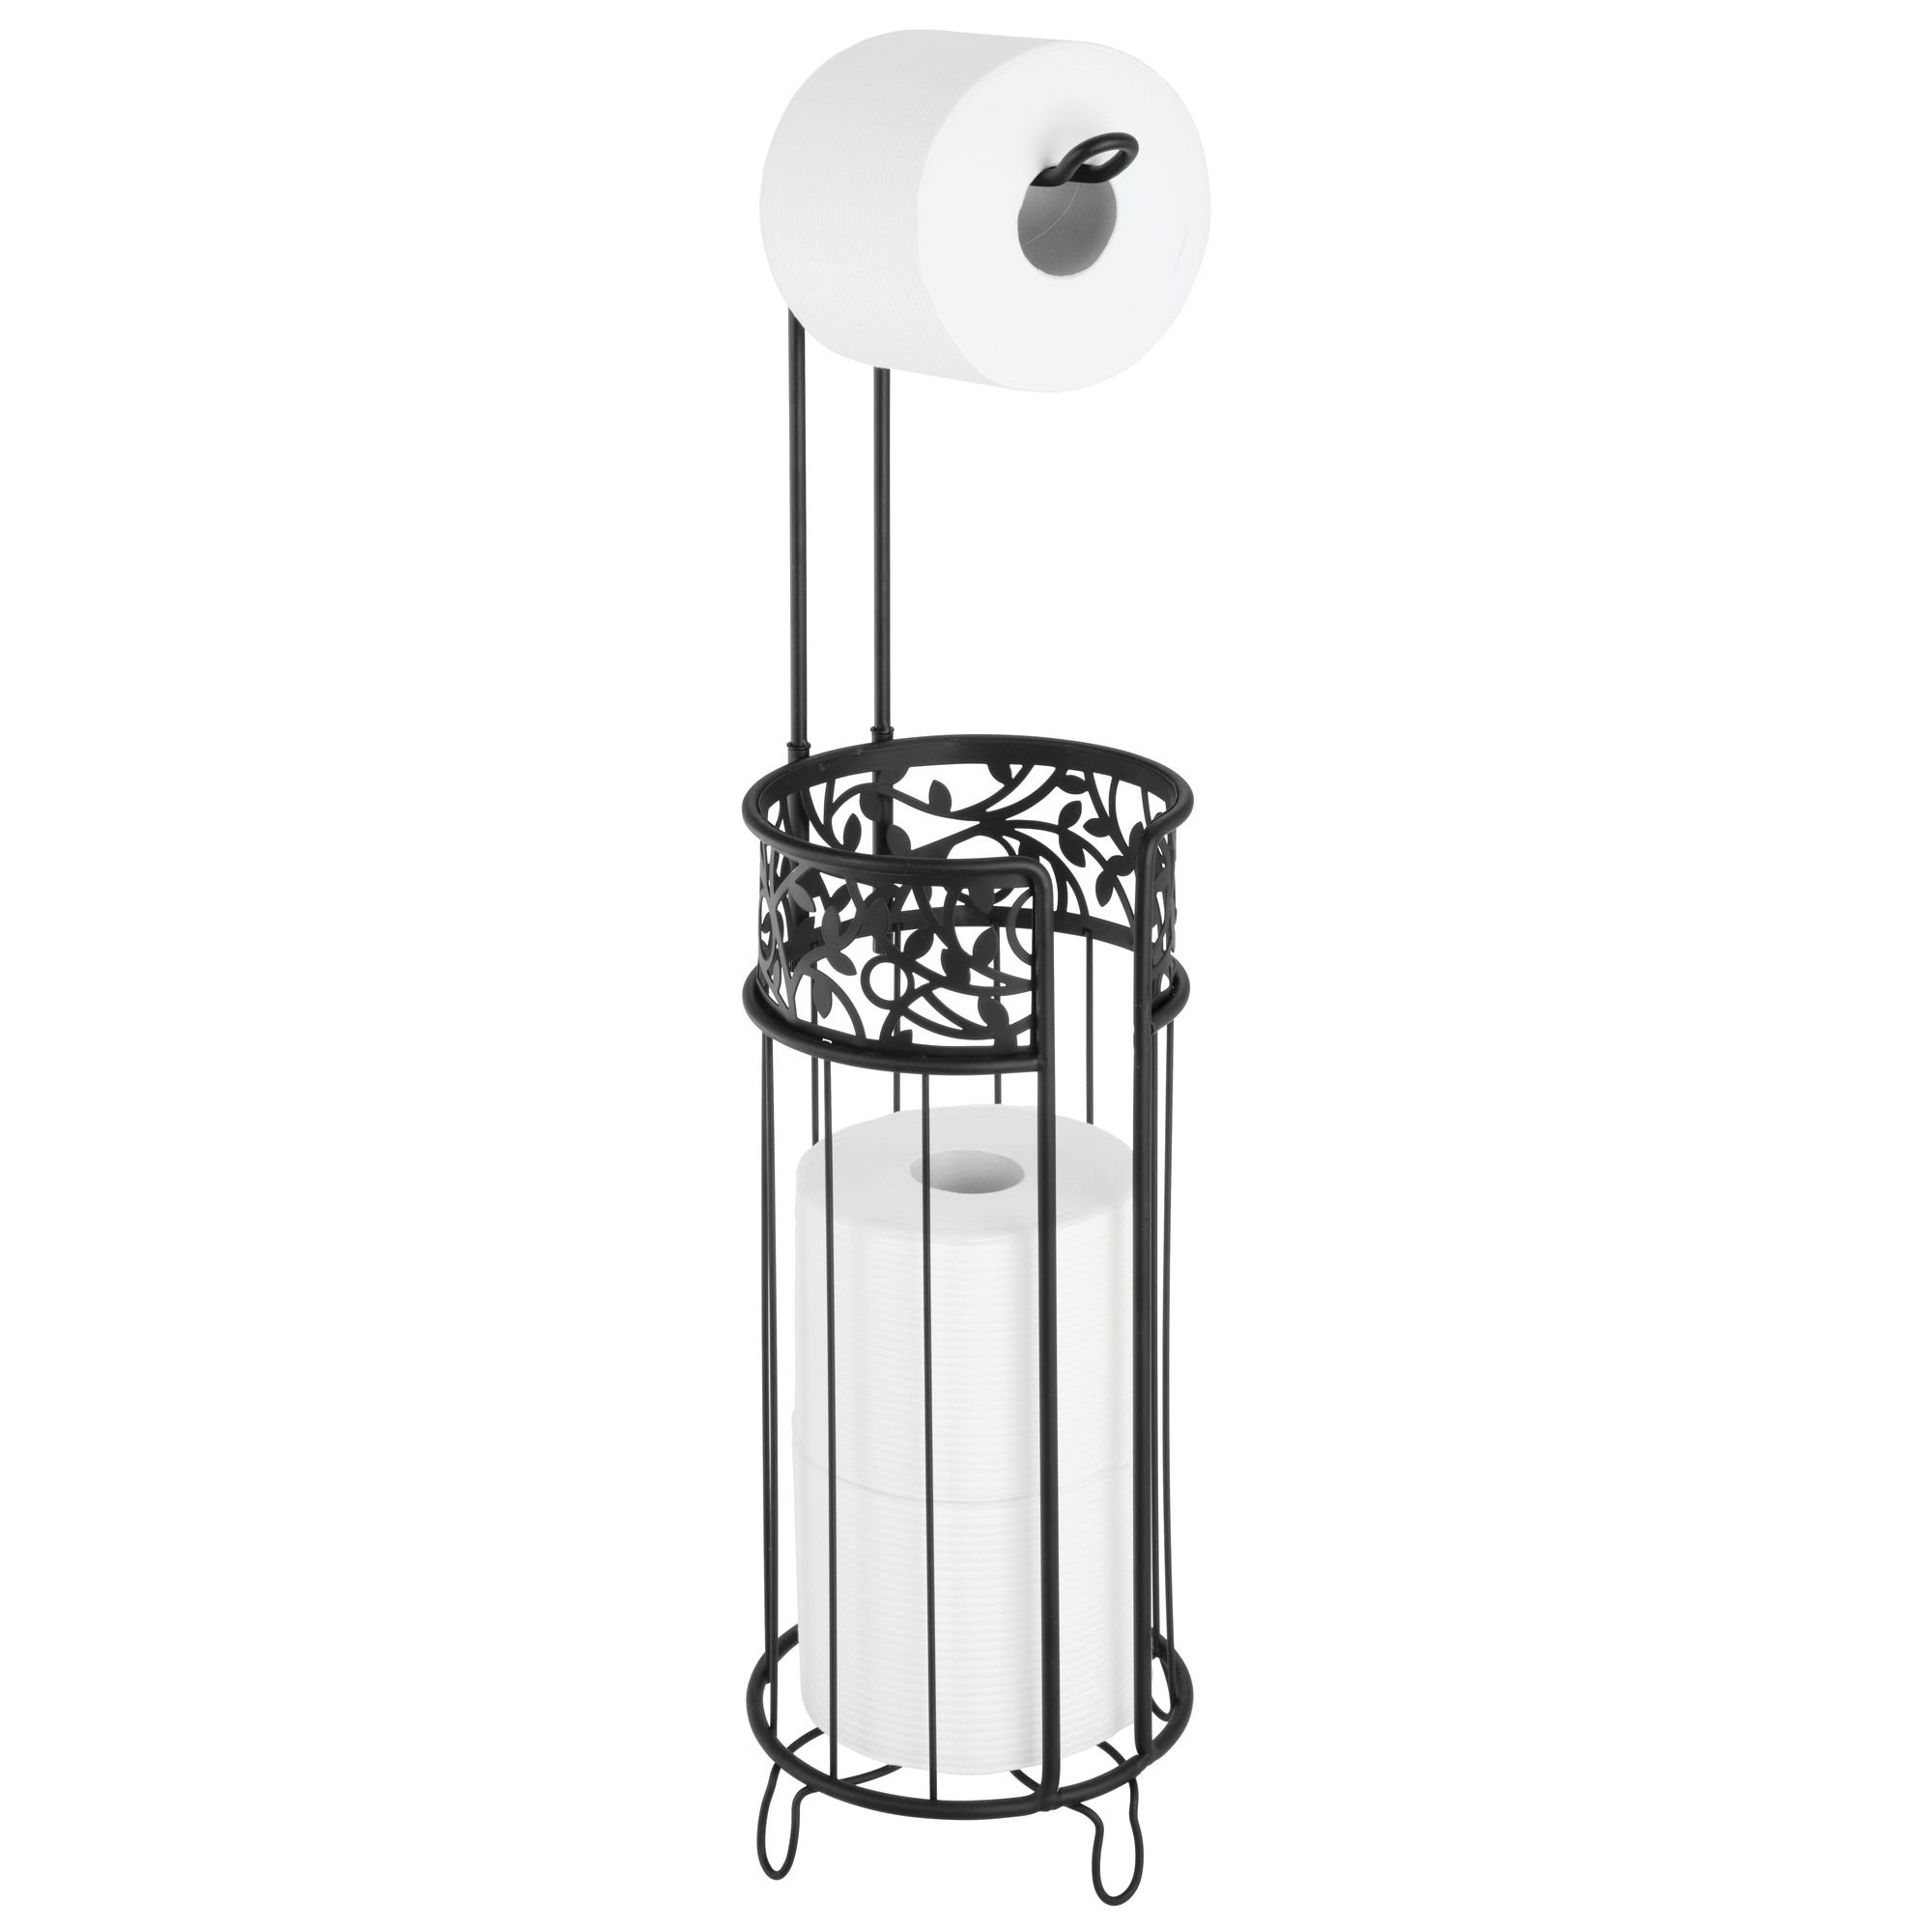 mDesign Tall Free Standing Toilet Paper Holder Stand and Dispenser, with Storage for 3 Spare Rolls of Toilet Tissue While Dispensing 1 Roll - for Bathrooms/Powder Rooms - Holds Mega Rolls - Black